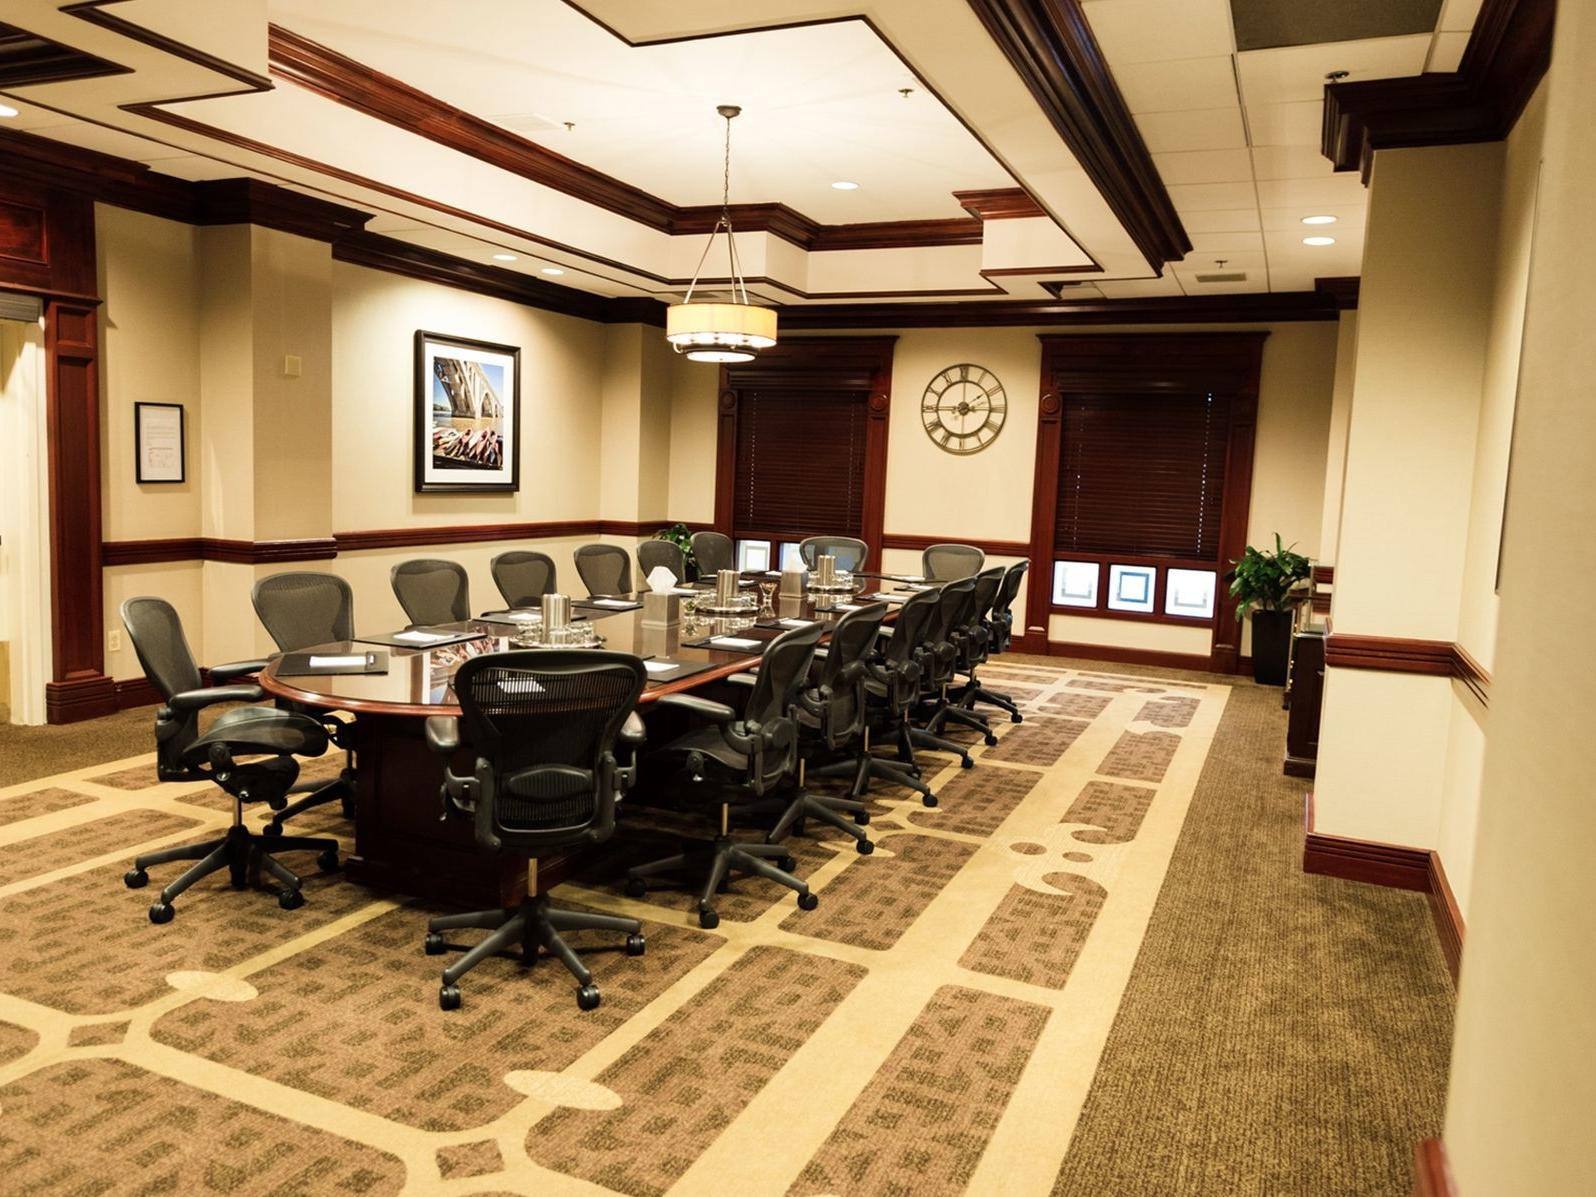 conference table in spacious room with carpet